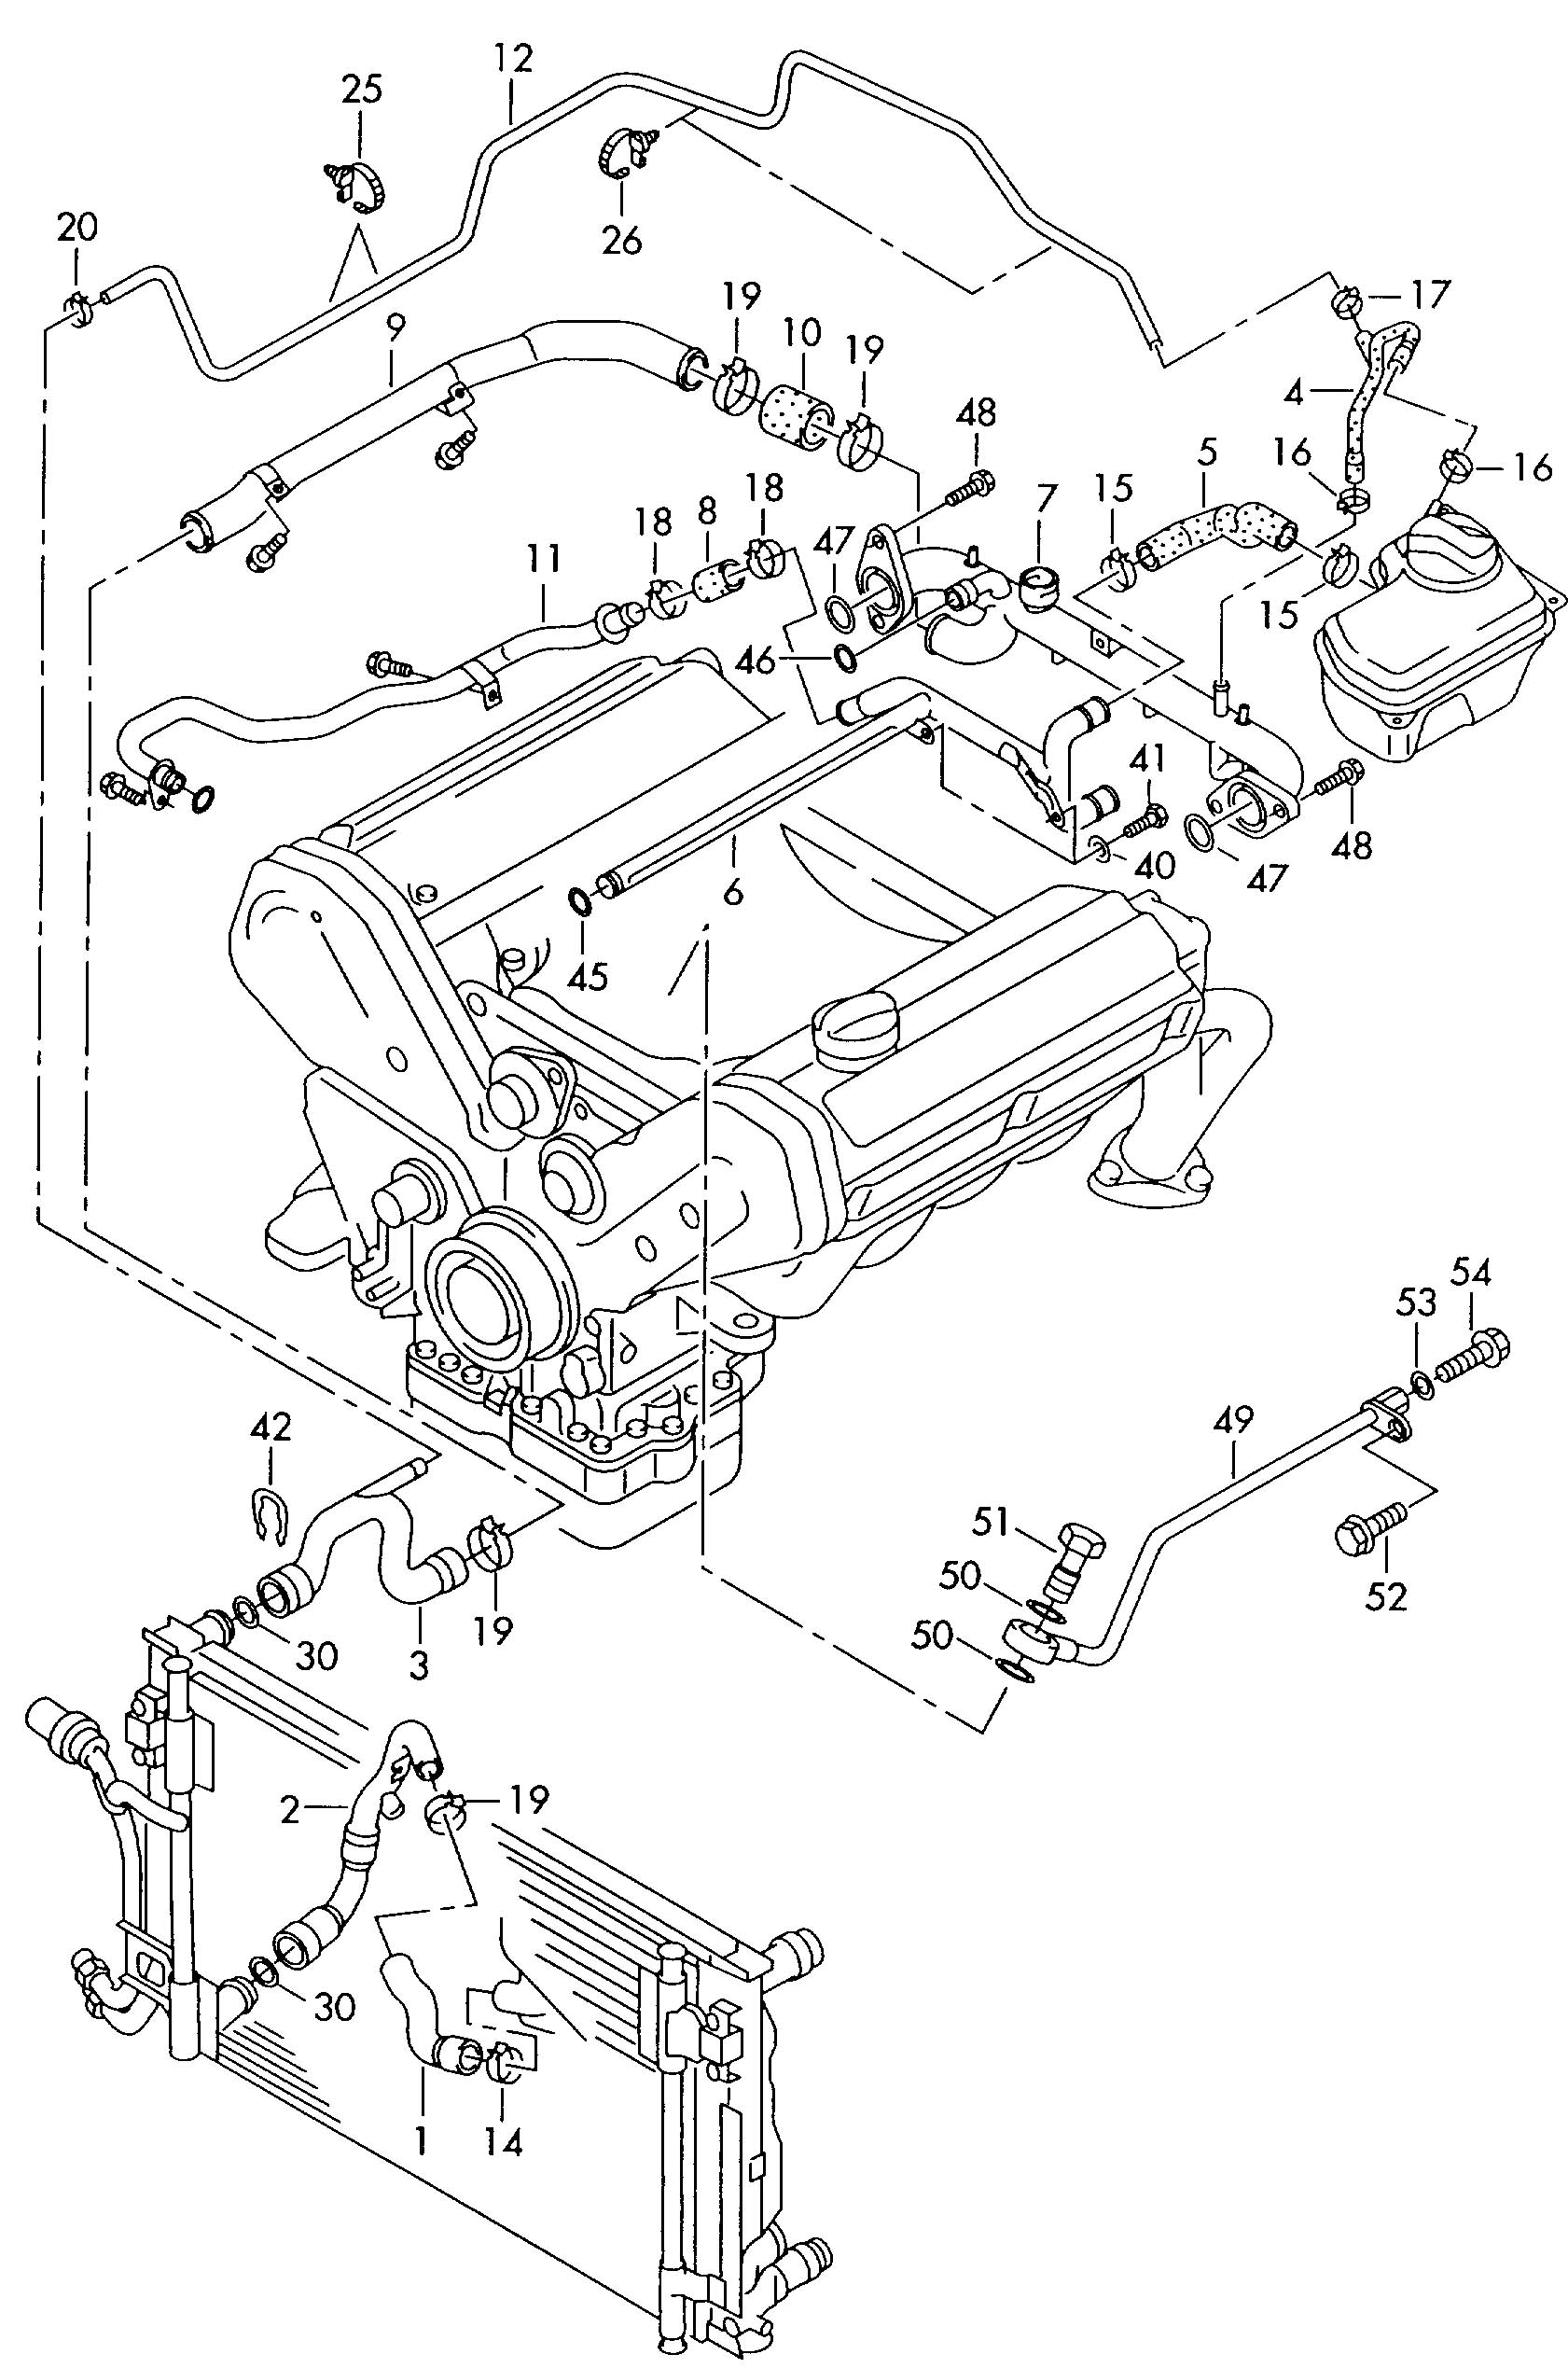 2003 audi a4 engine diagram 1957 chevy truck wiring 02 a6 3 1 8t